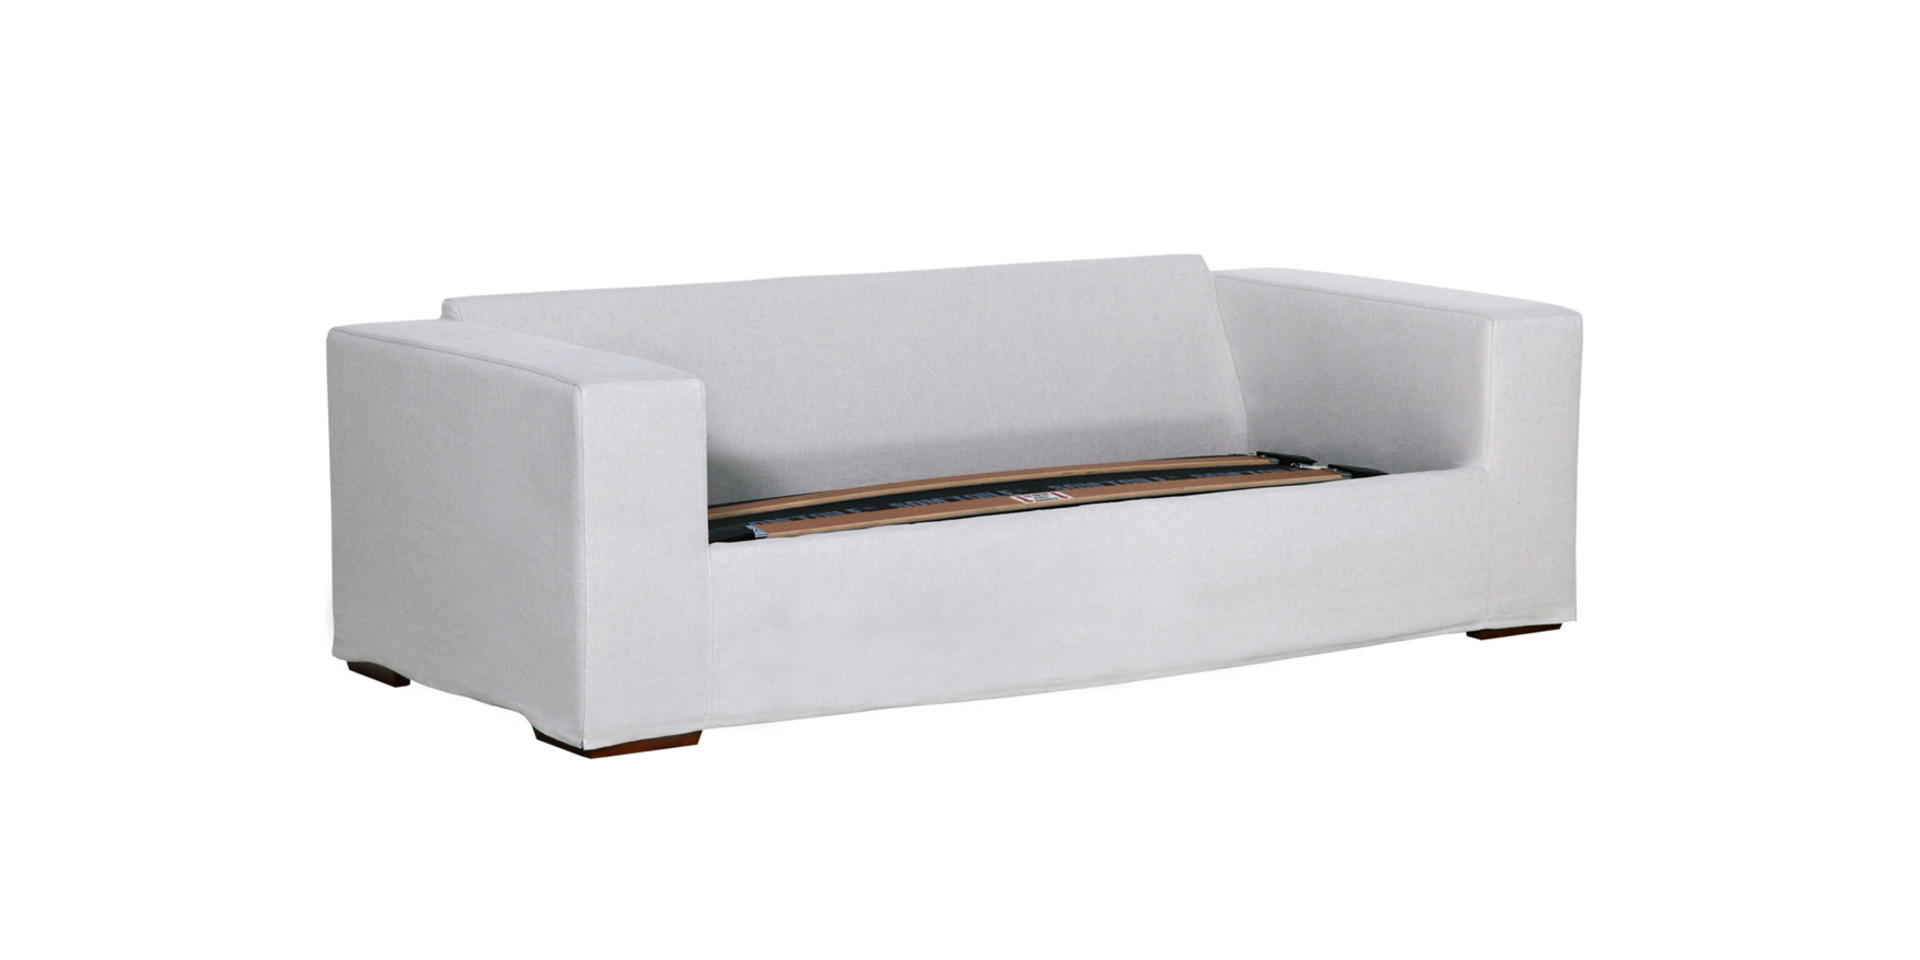 sits-antares-canape-sofa_bed3_caleido3790_light_beige_3